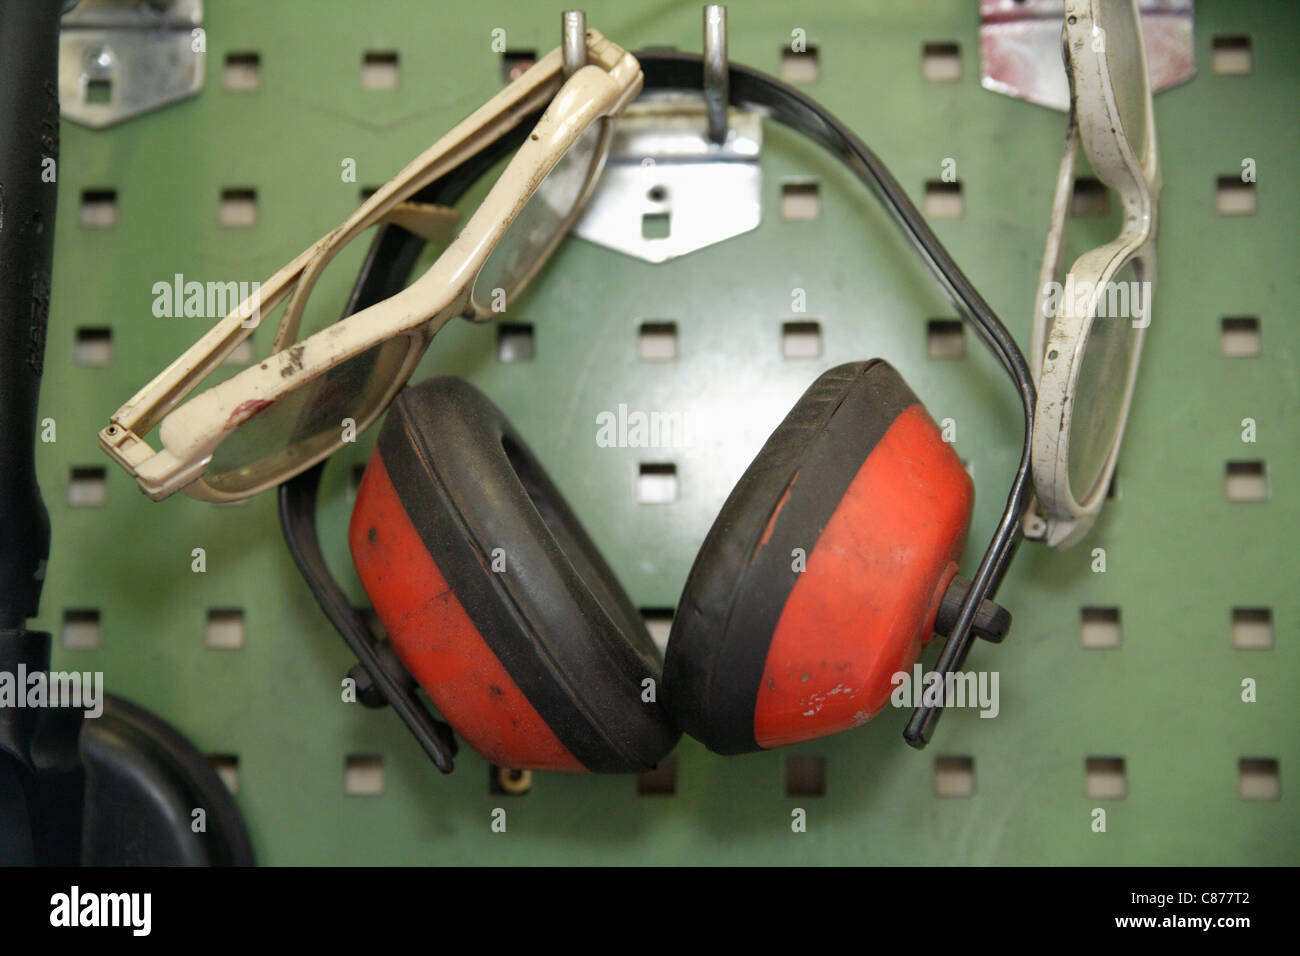 Ear Protectors Stock Photos Images Alamy Wiring Harness Pegboard Germany Ebenhausen Close Up Of Safety Glasses And On In Repair